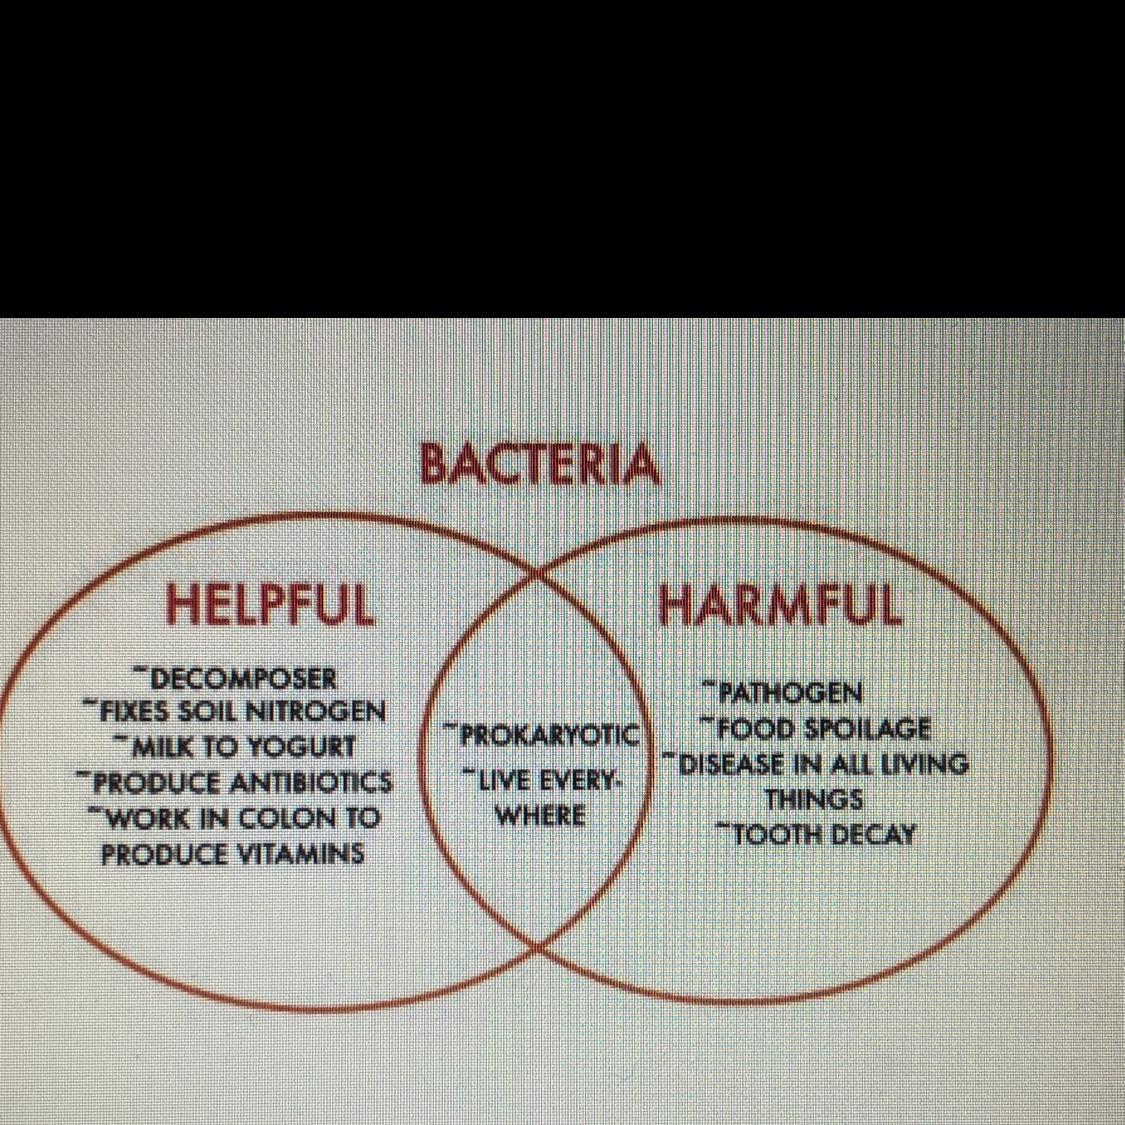 Bacteria And Virus Venn Diagram The Venn Diagram Details Some Of The Helpful And Harmful Effects Of